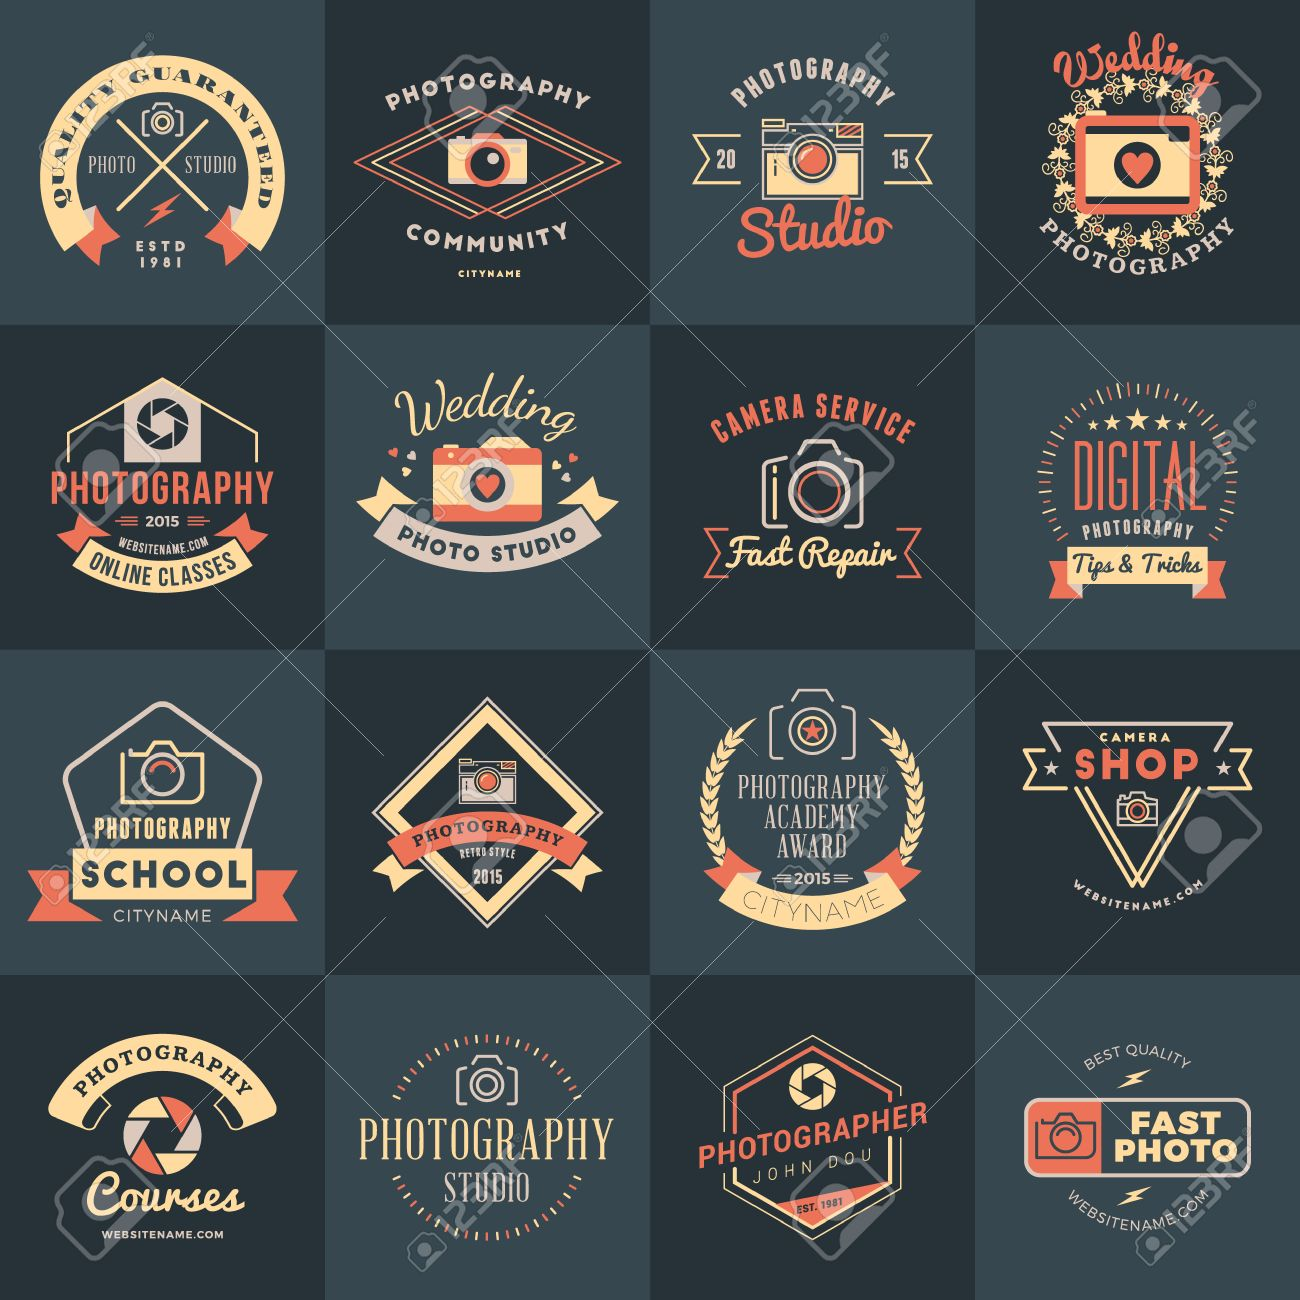 Vector Set Of Photography Logo Design Templates Photography Royalty Free Cliparts Vectors And Stock Illustration Image 45323812